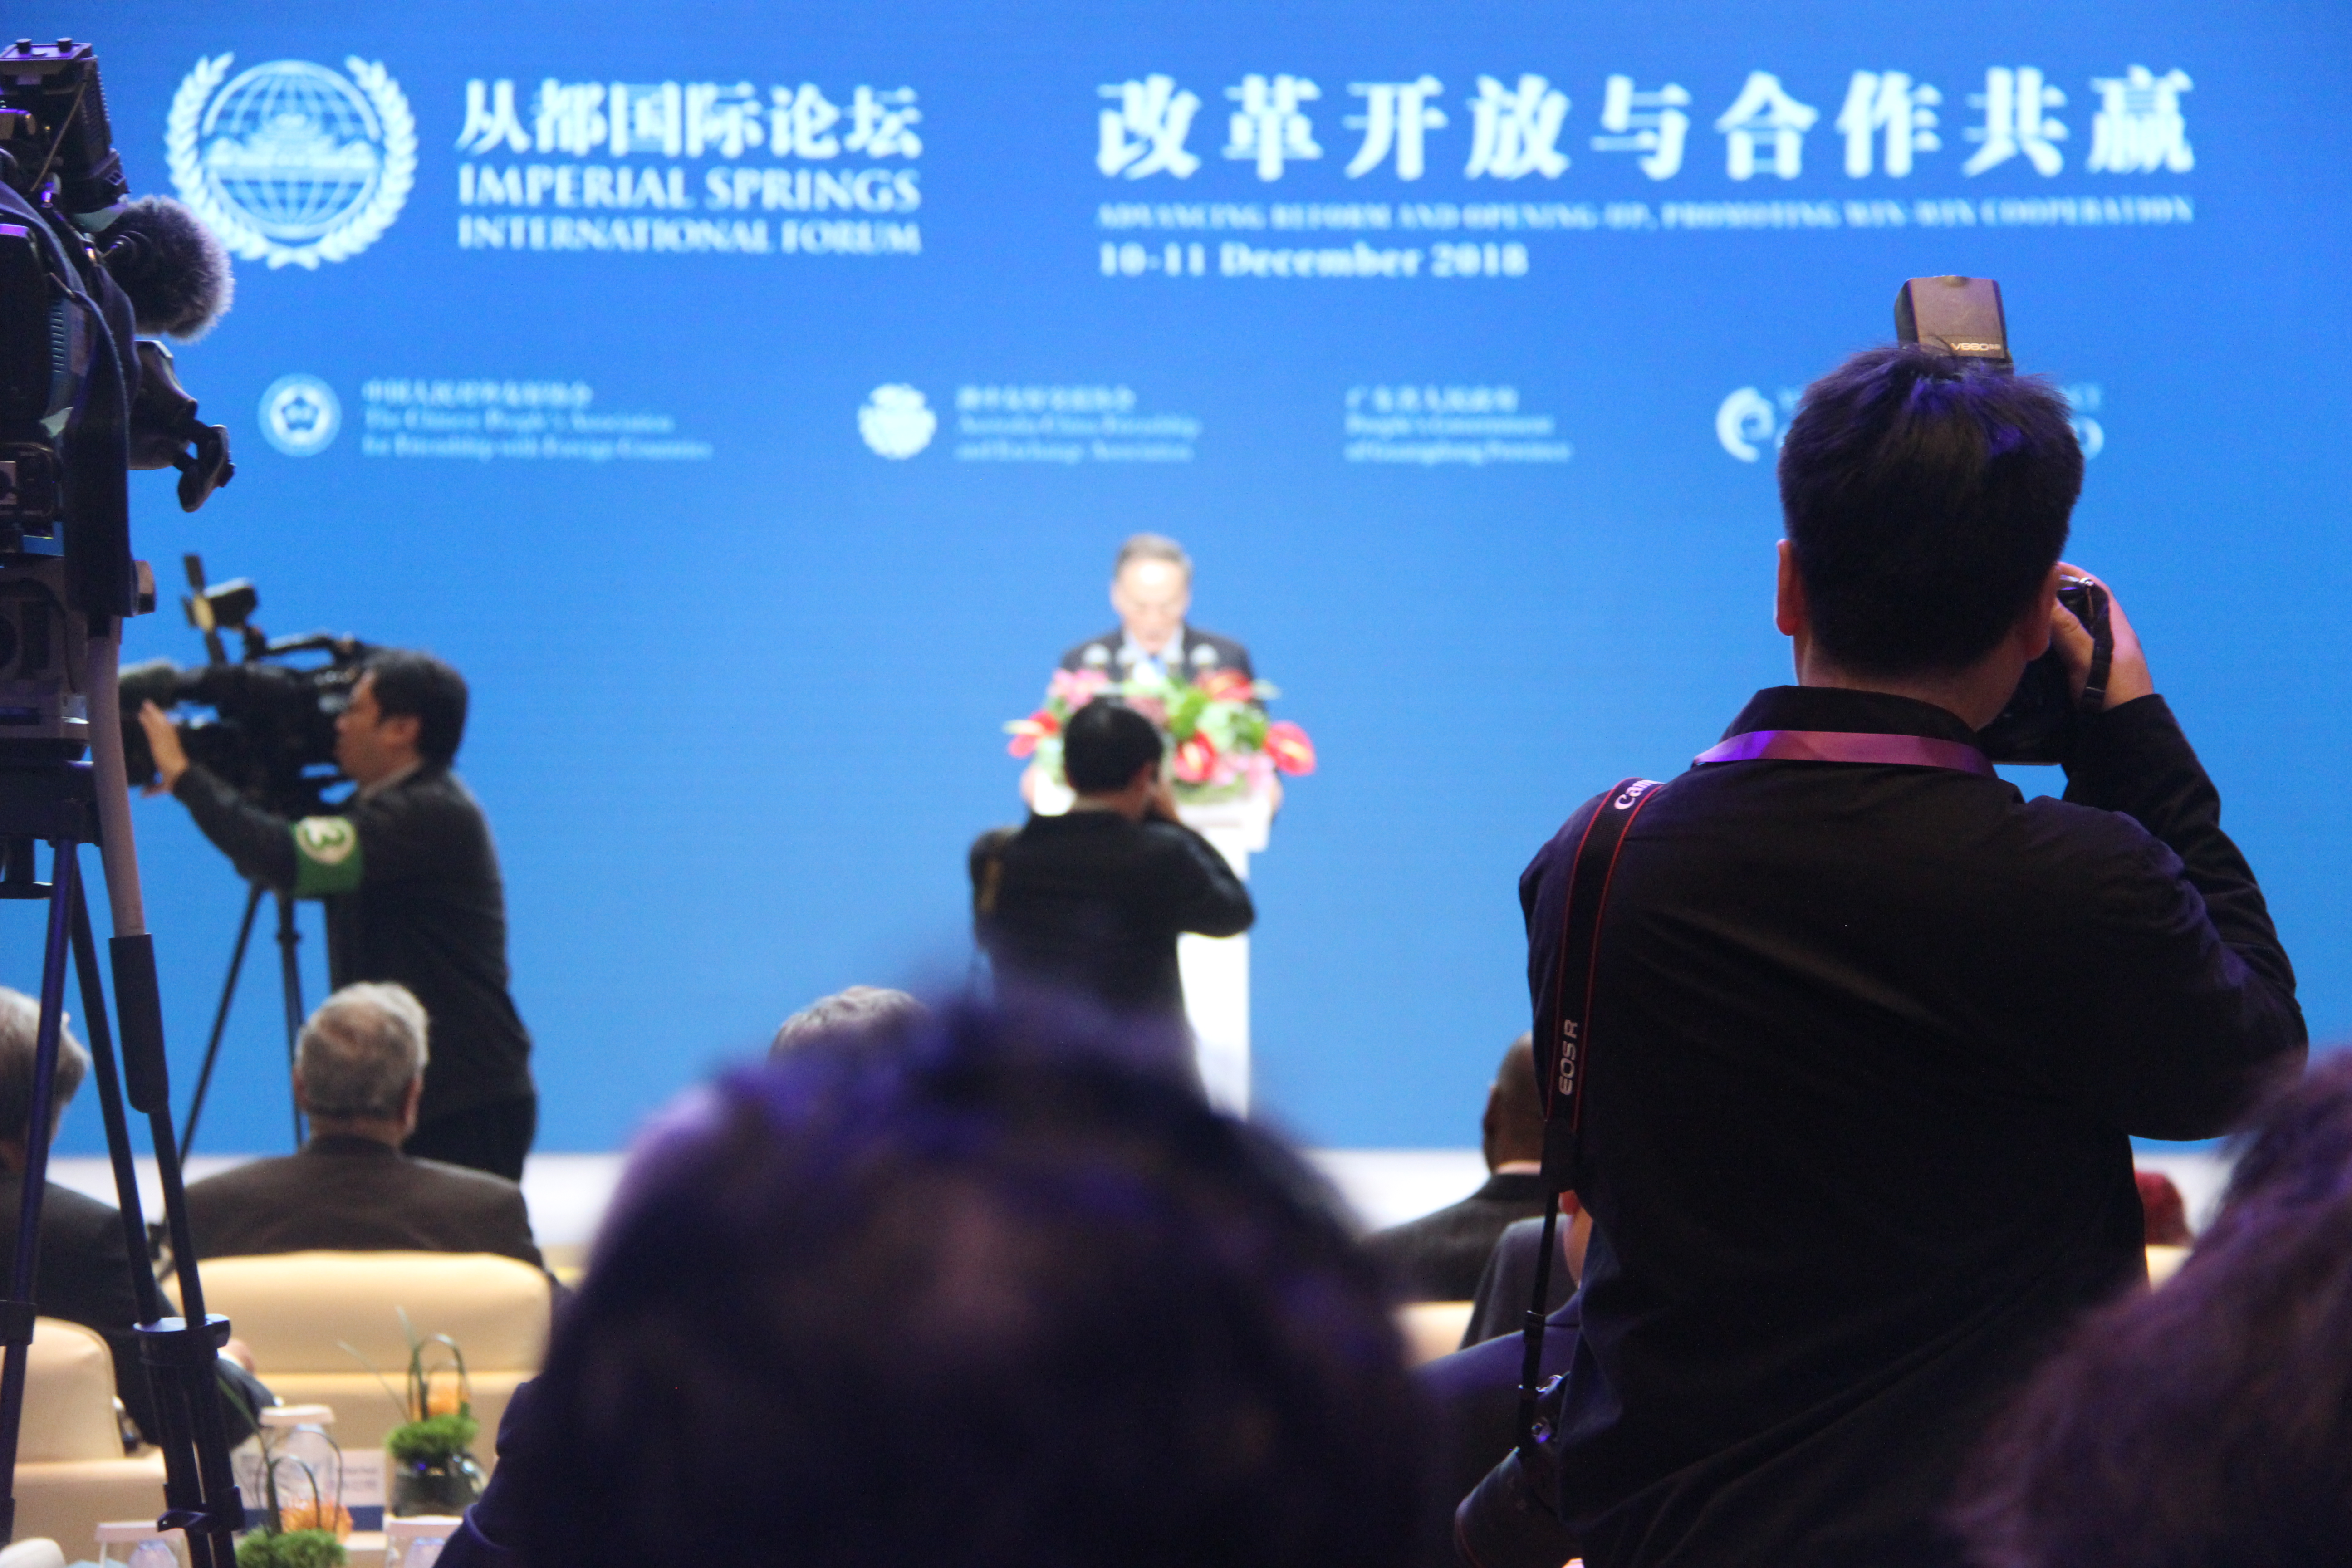 Club de Madrid Discusses Global Governance in China and Presents Conclusions to Xi Jinping